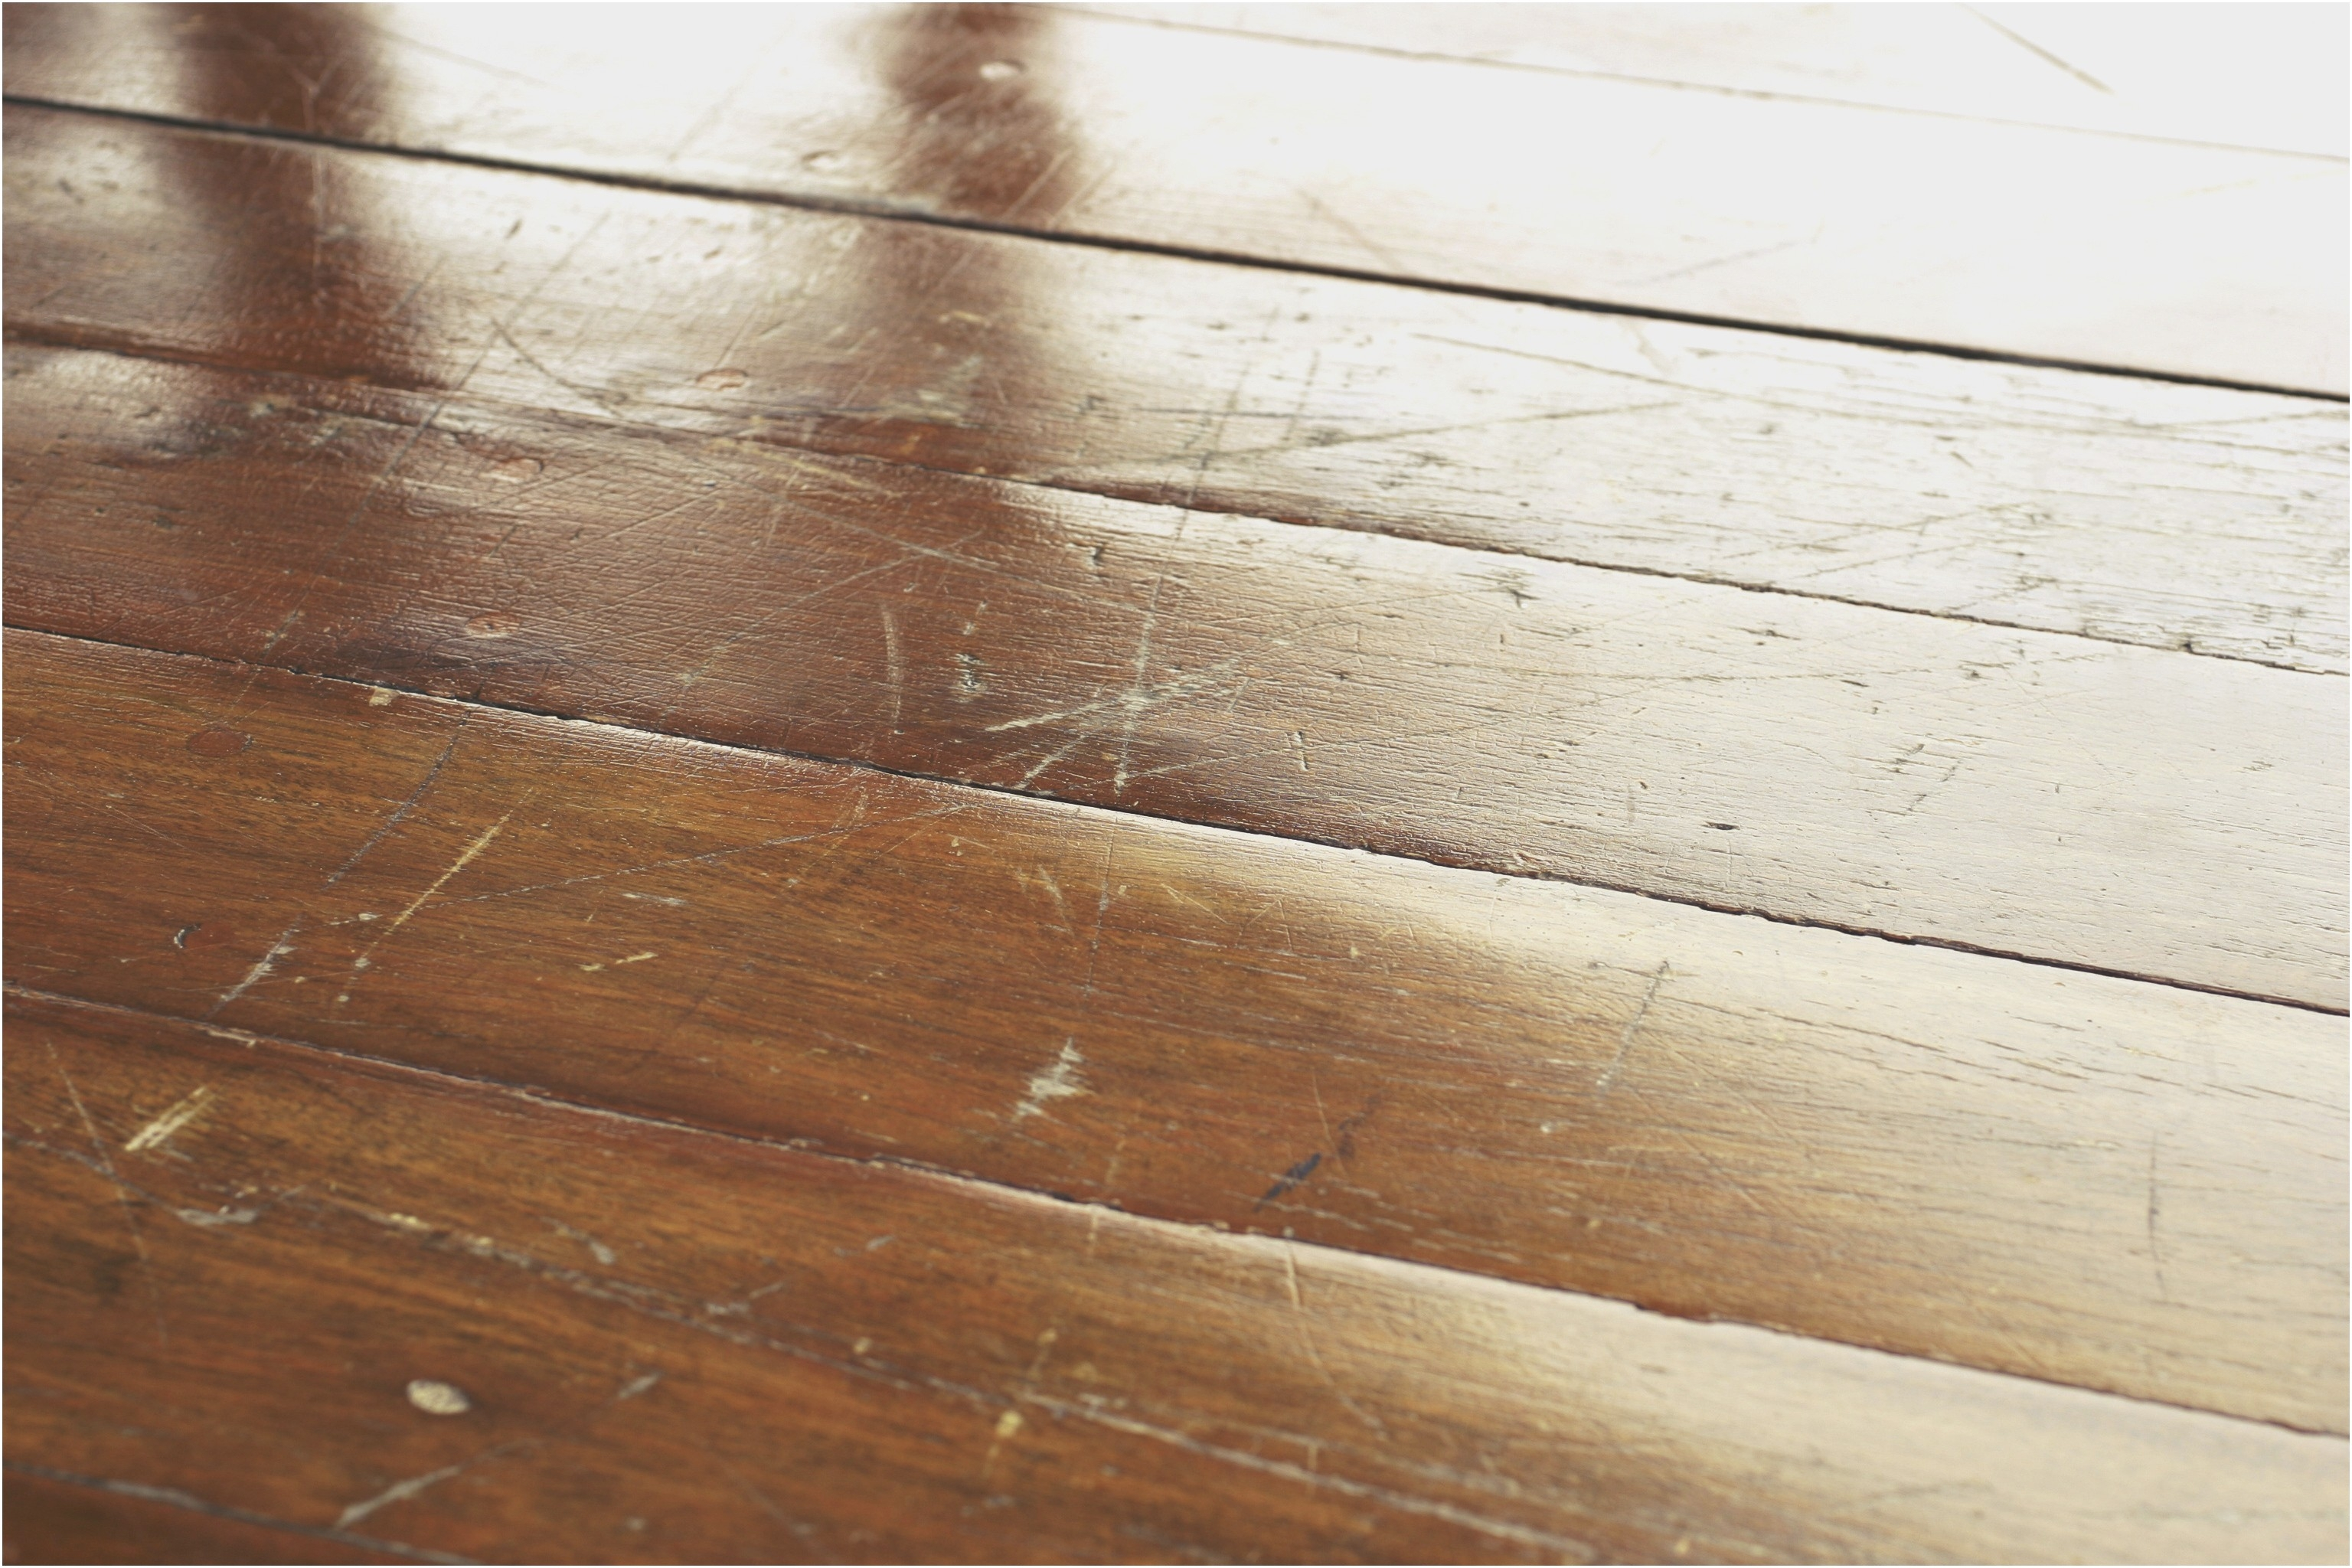 Rejuvenate Wood Floors Without Sanding